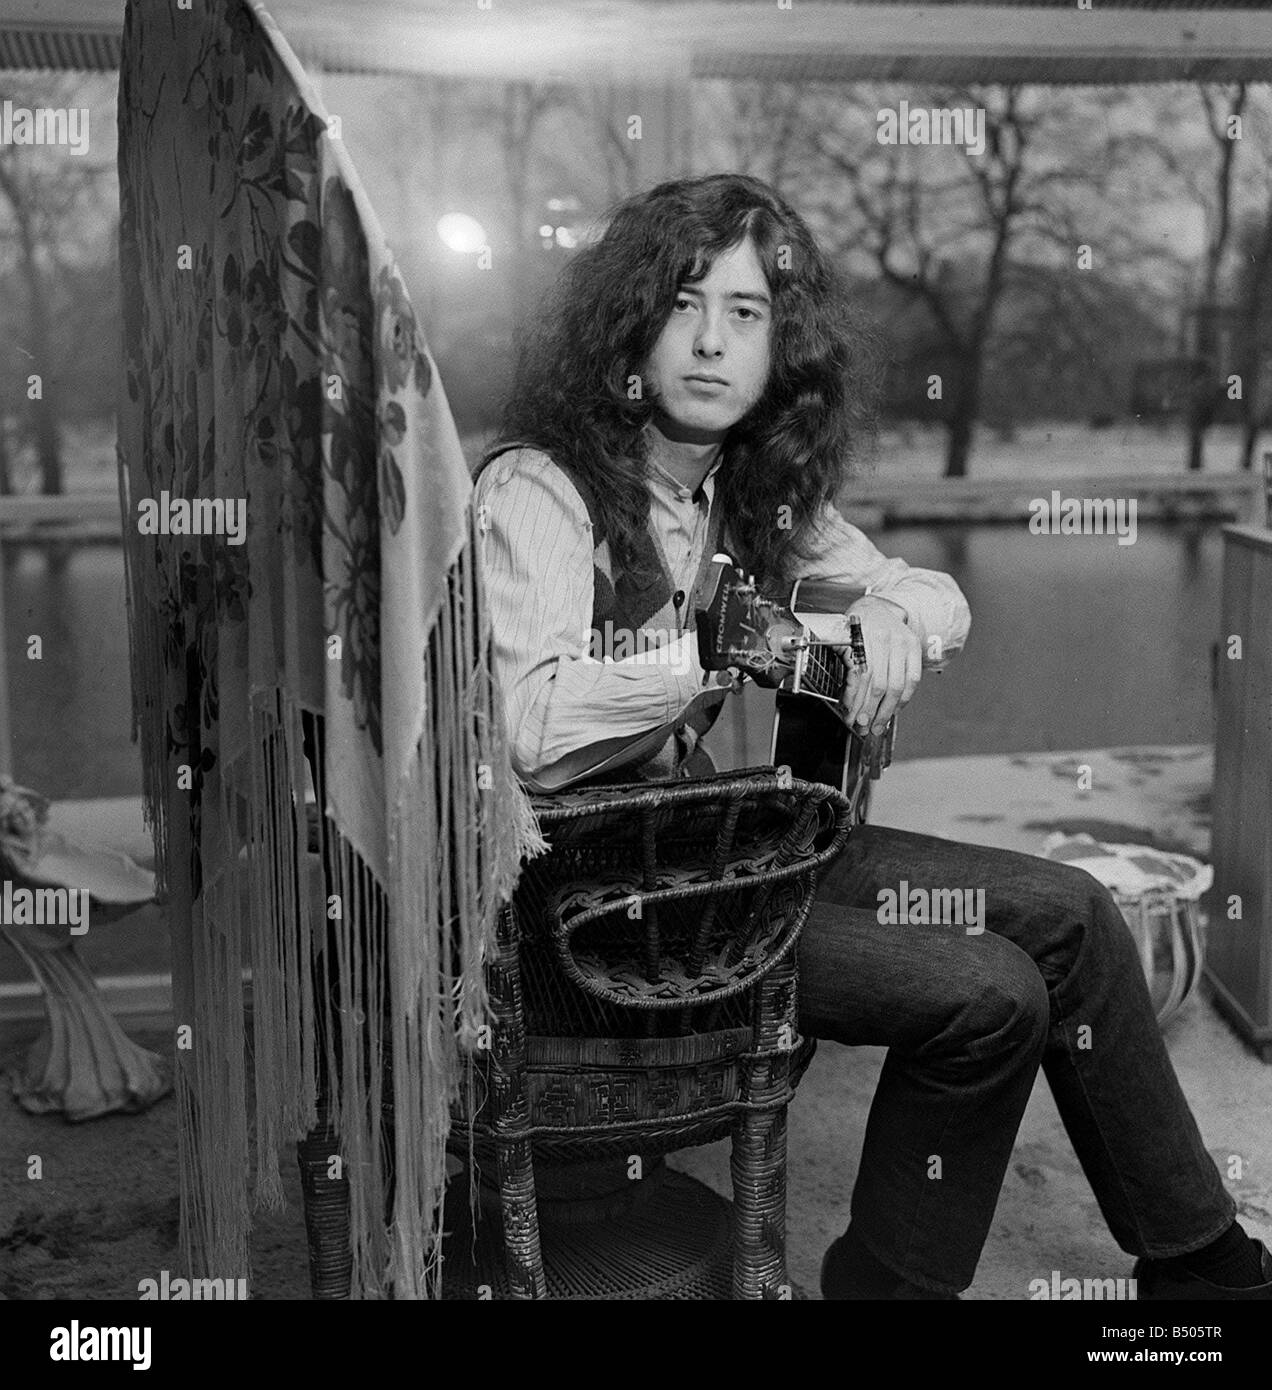 Jimmy Page Led Zeppelin guitarist January 1970 - Stock Image